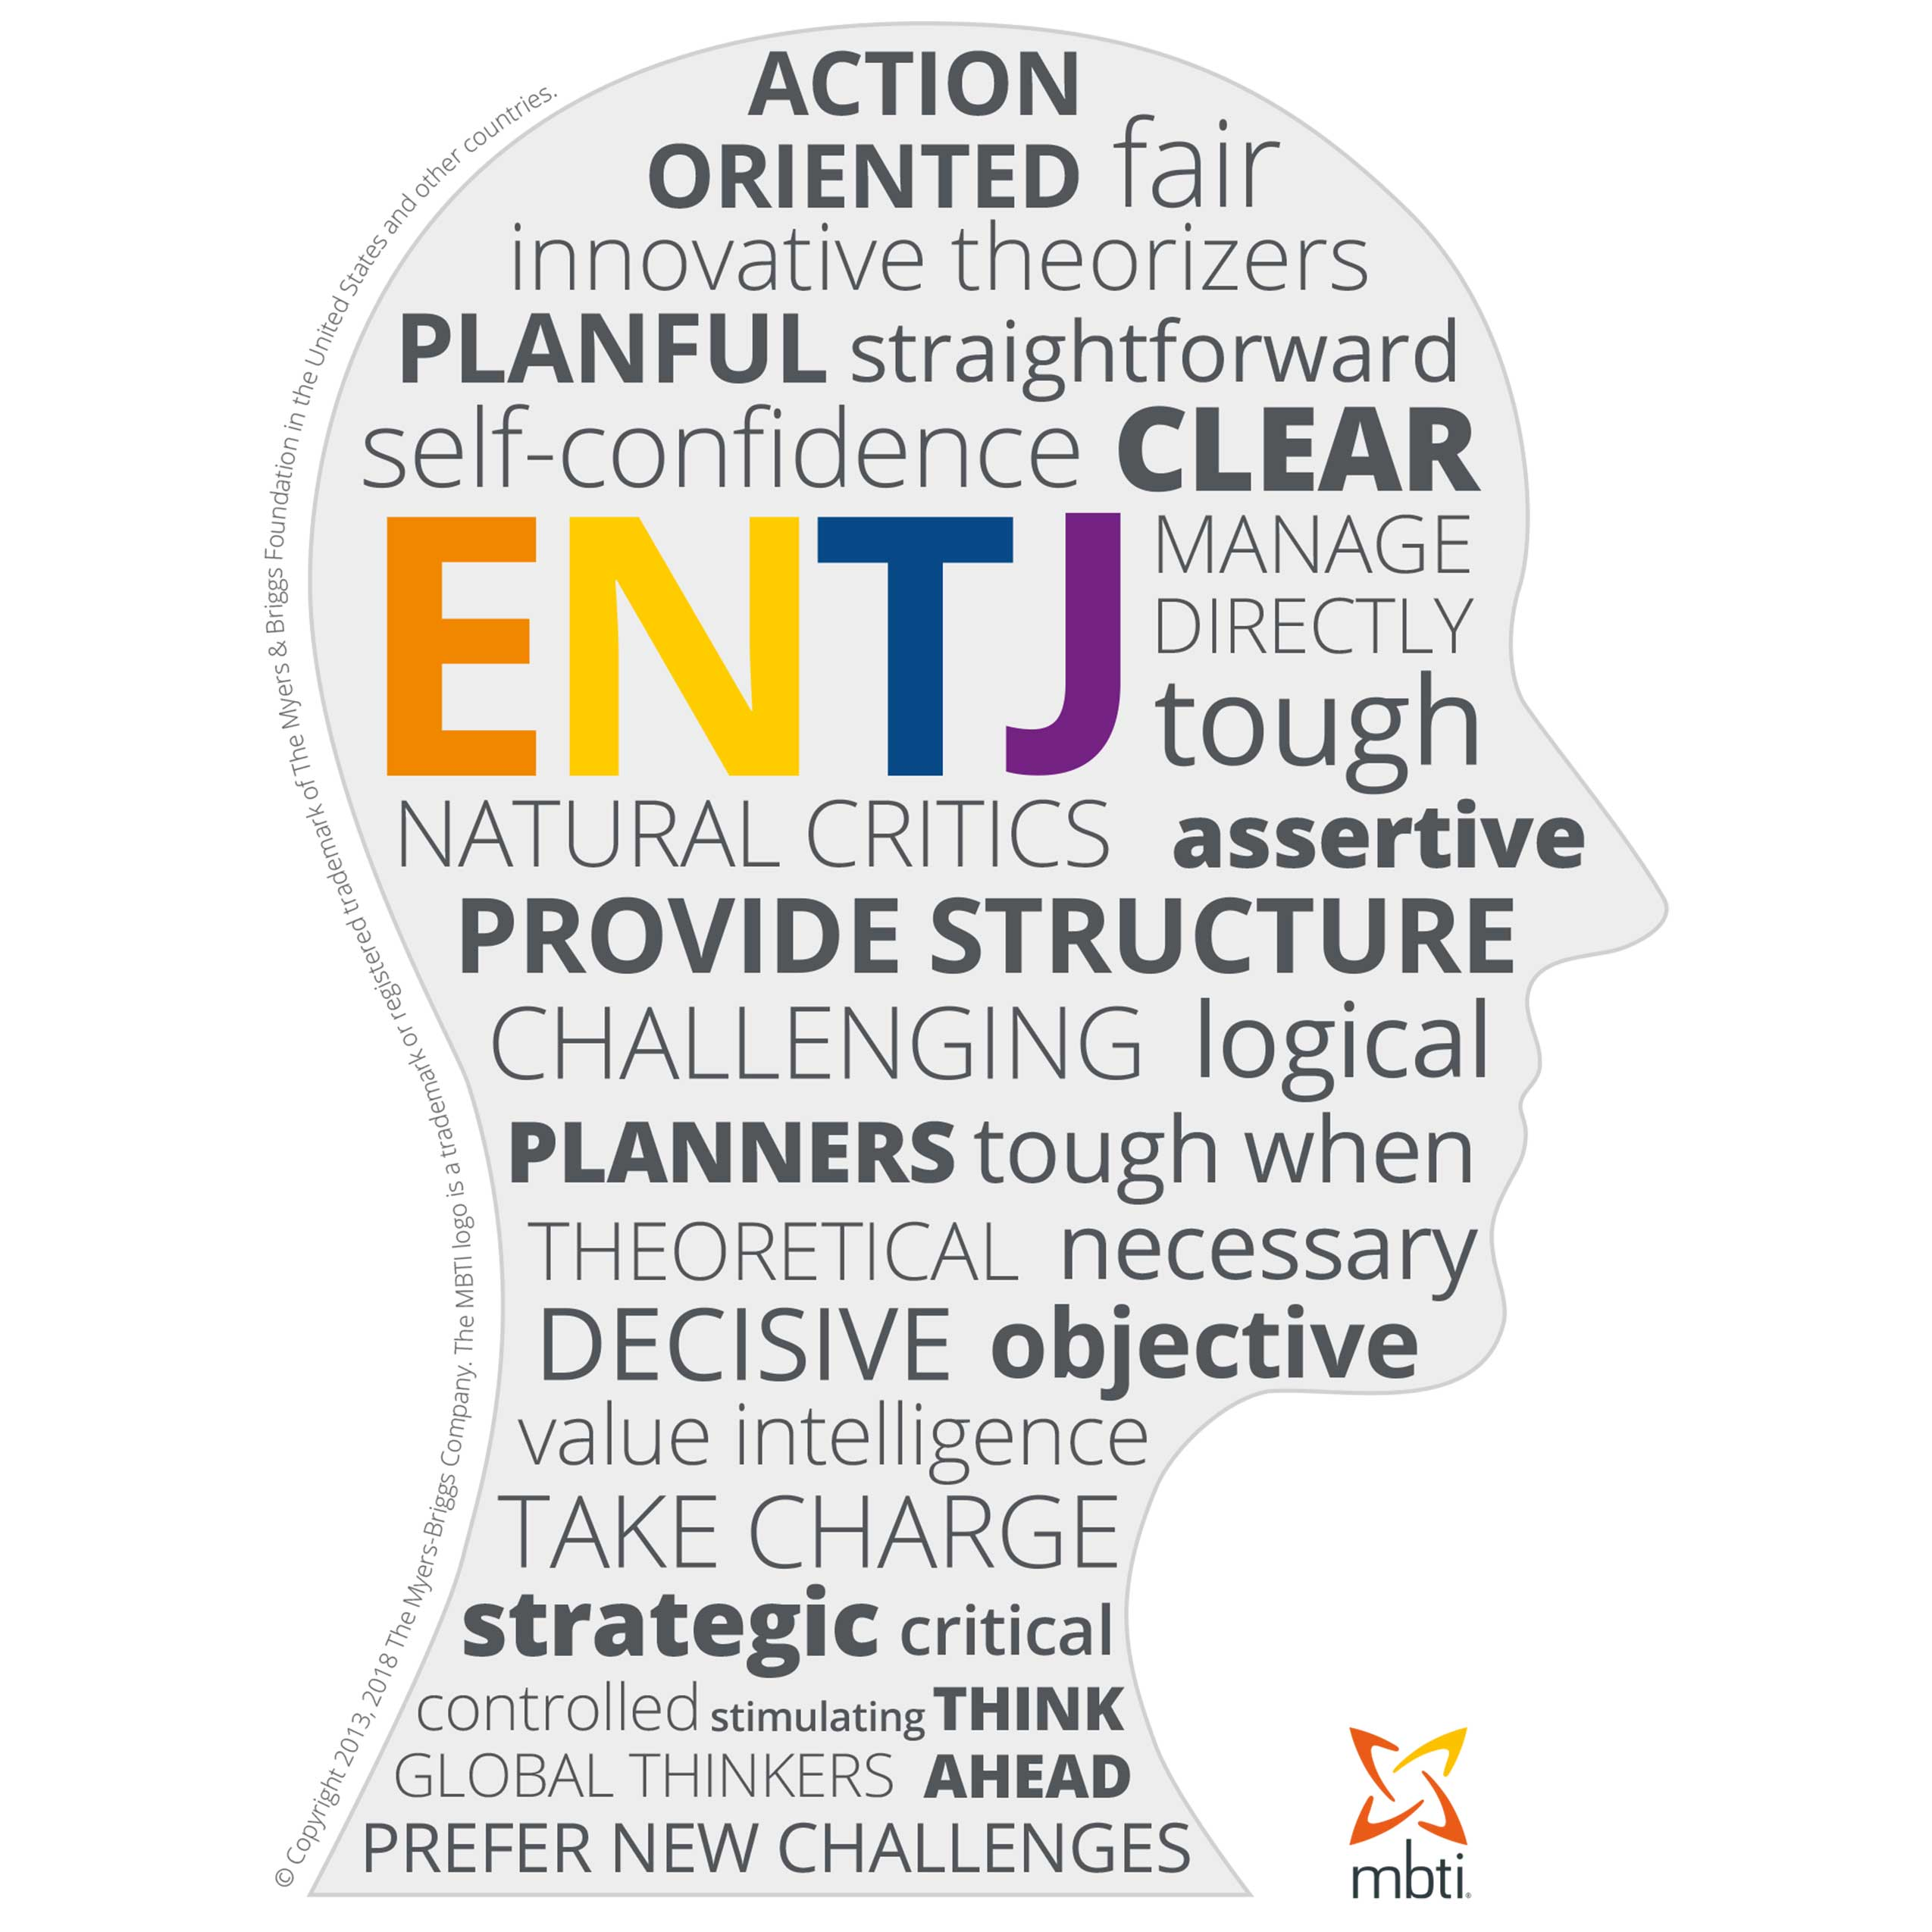 Typical characteristics of an ENTJ